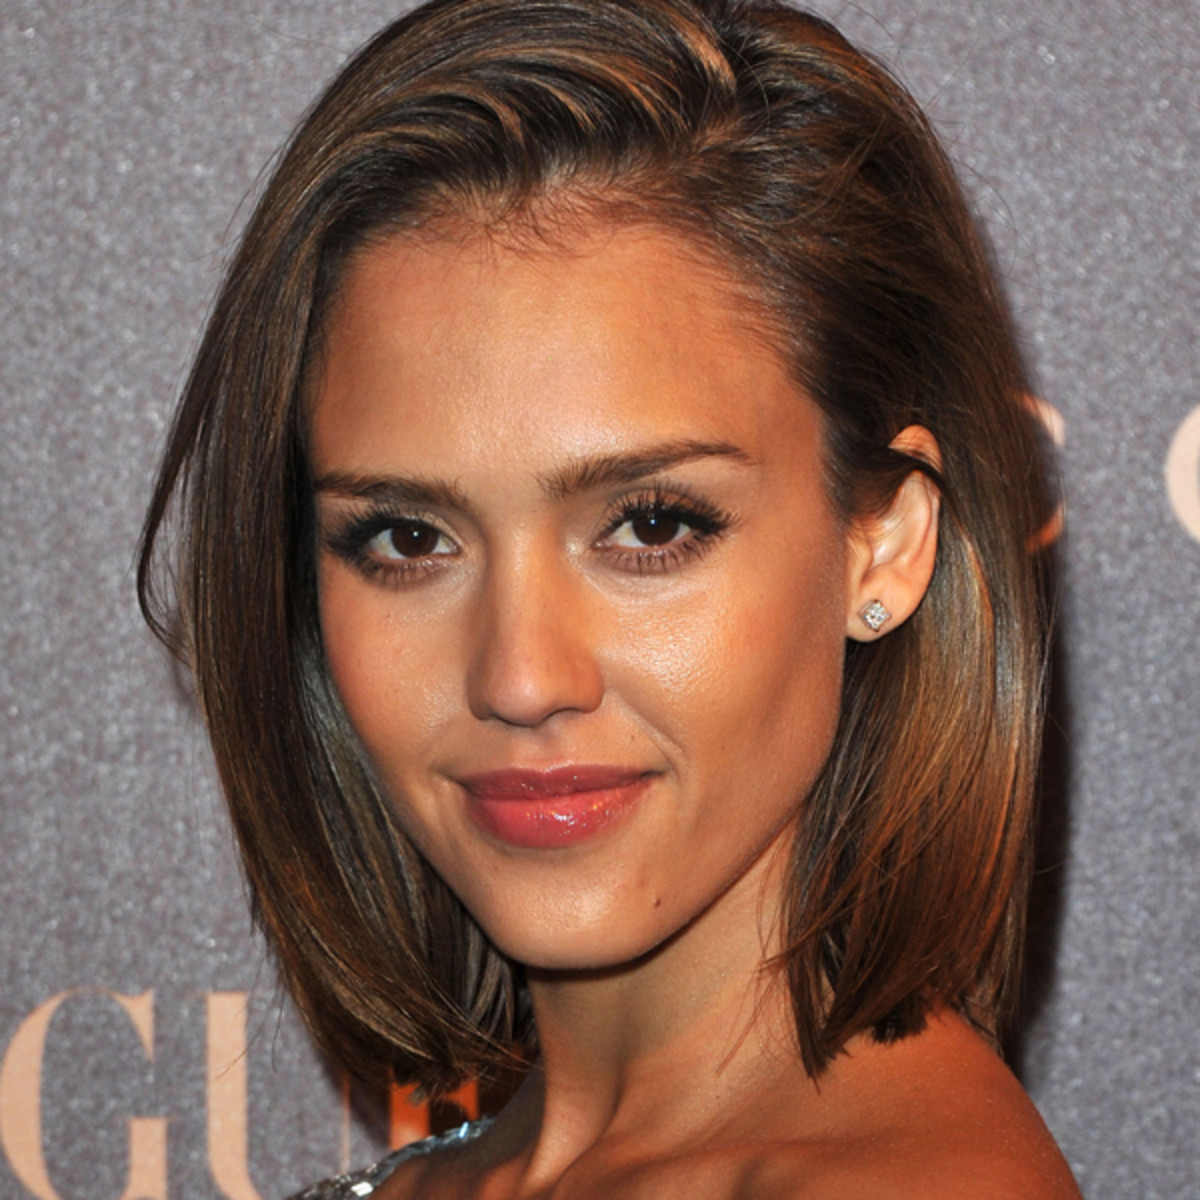 Jessica-Alba-Paris-Fashion-Week-Spring-2011-Couture-Gucci-dinner